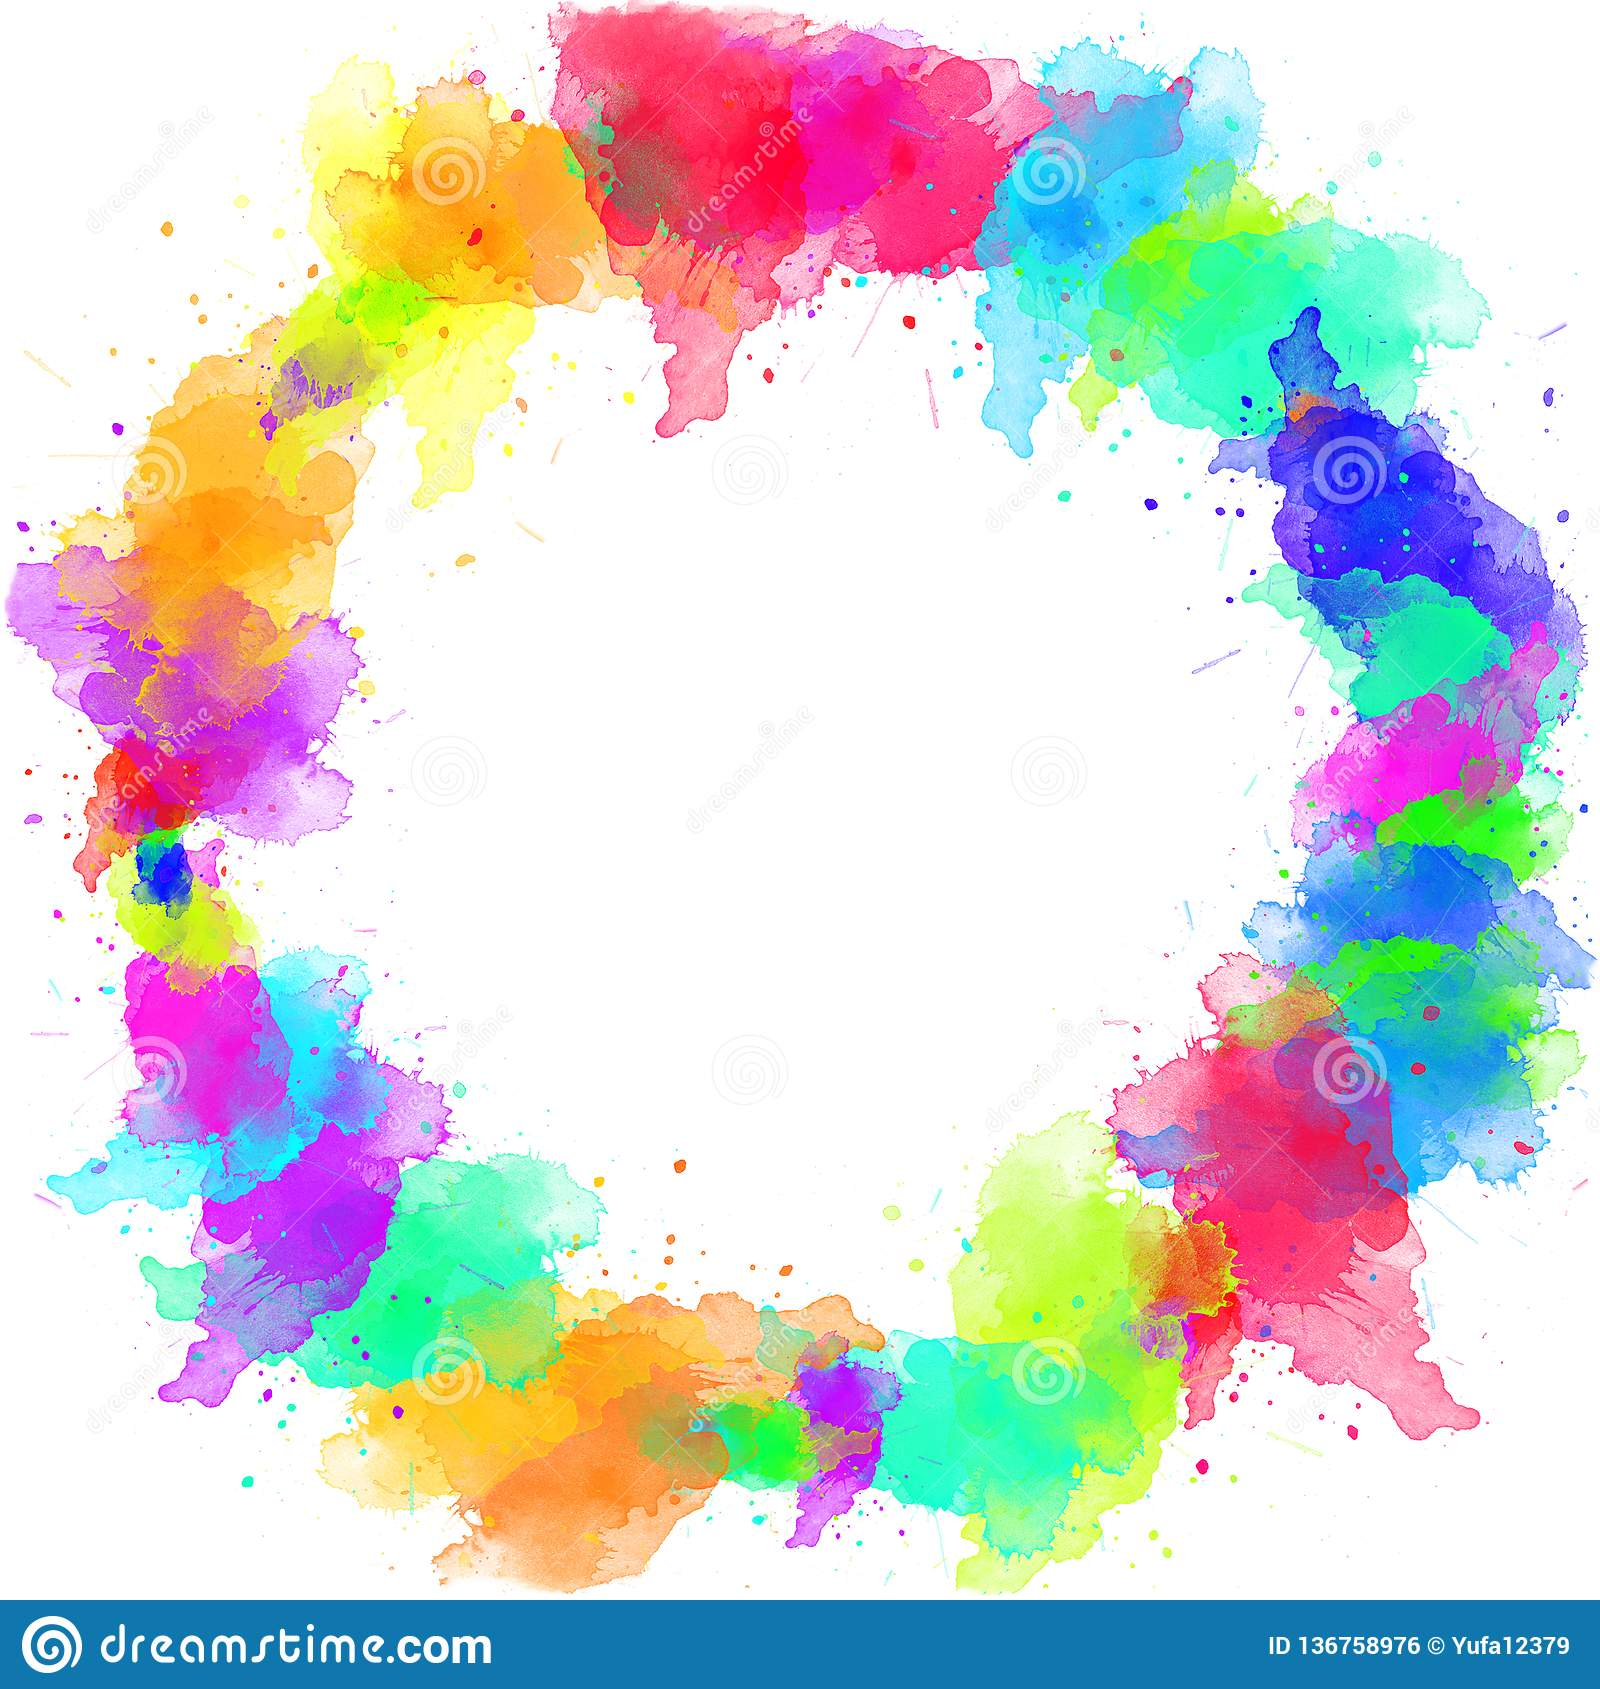 Watercolor Colorful Borders Design For Frame Wallpapers